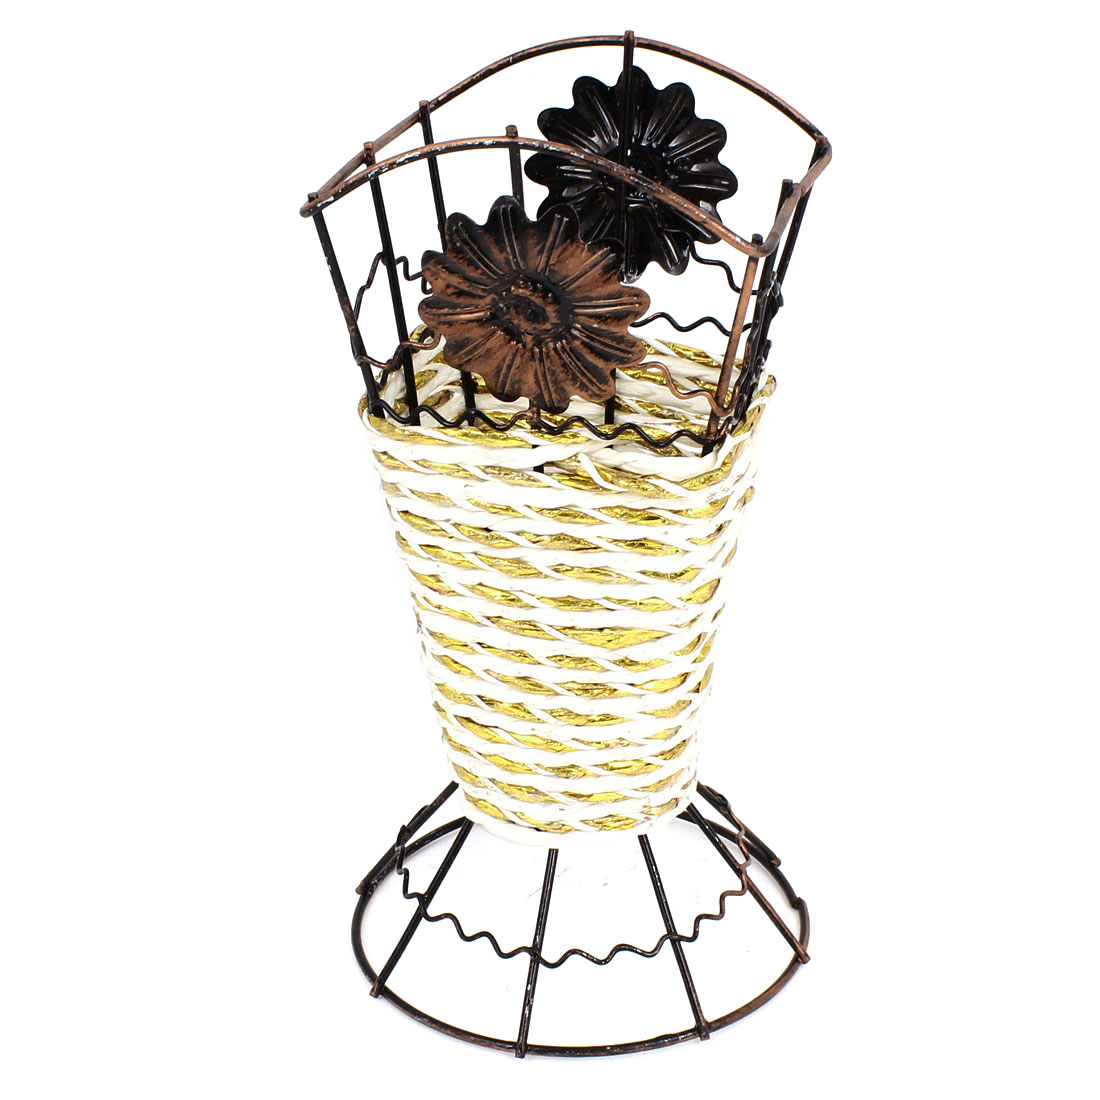 Copper Tone Metal Frame Weave Craft Artificial Flowers Vase Basket White